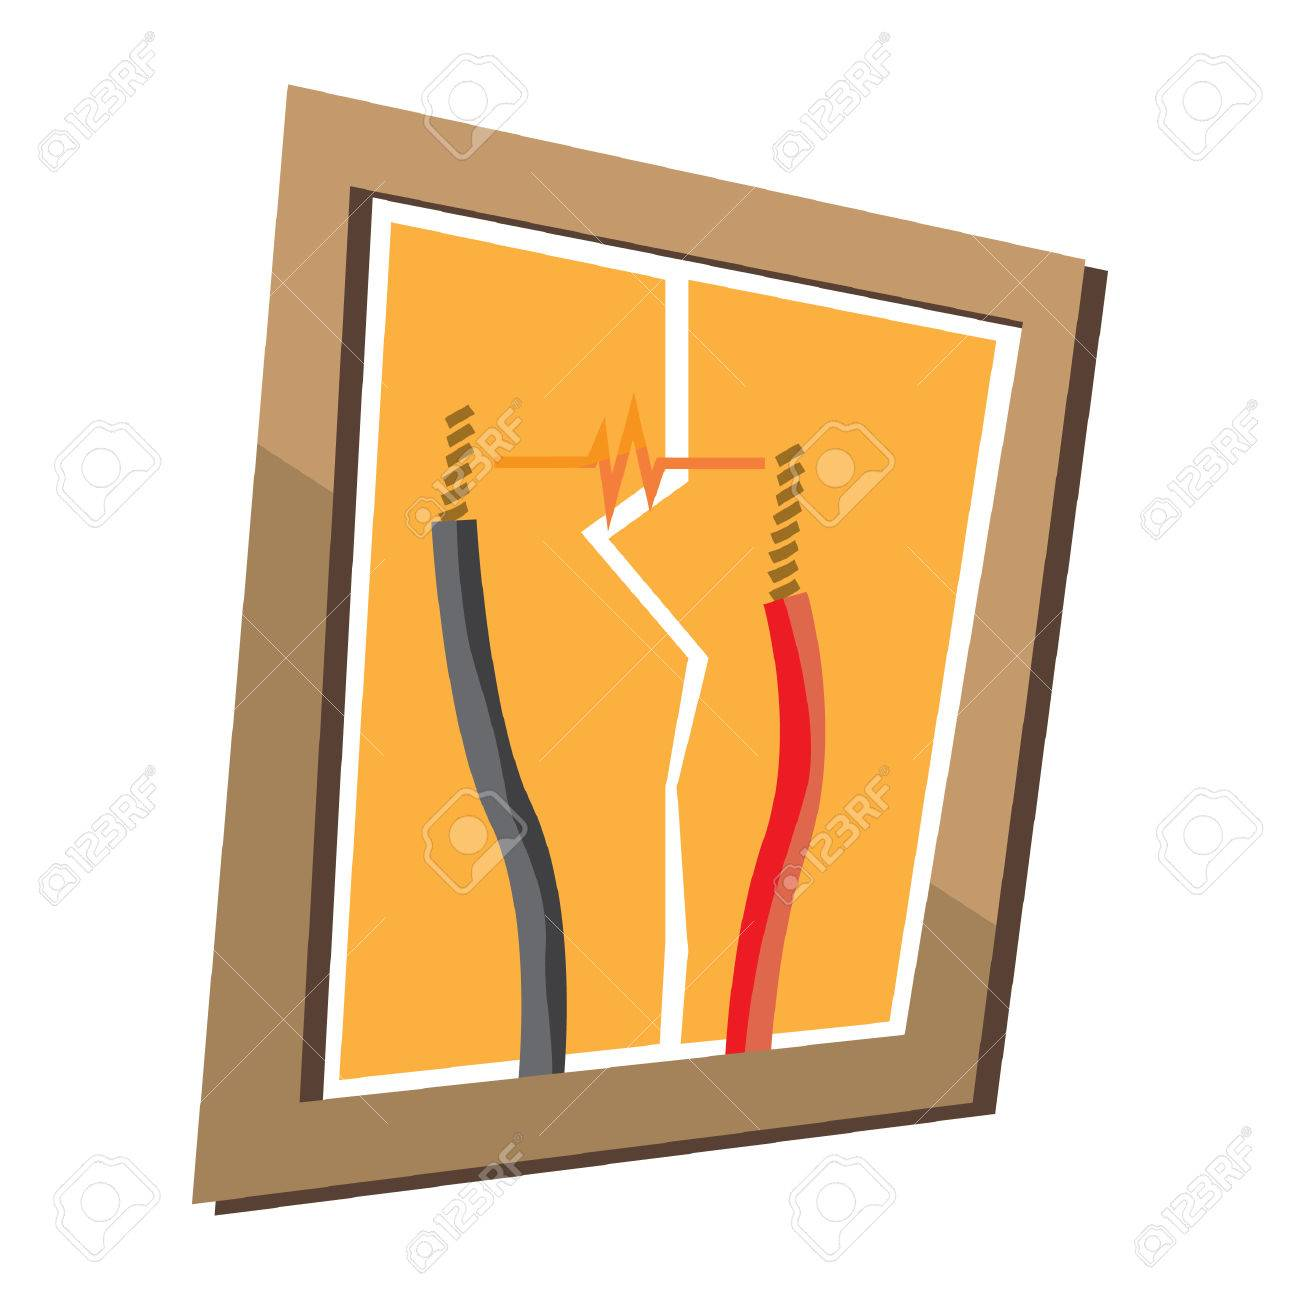 Electrical Wire Clip Art Dolgular